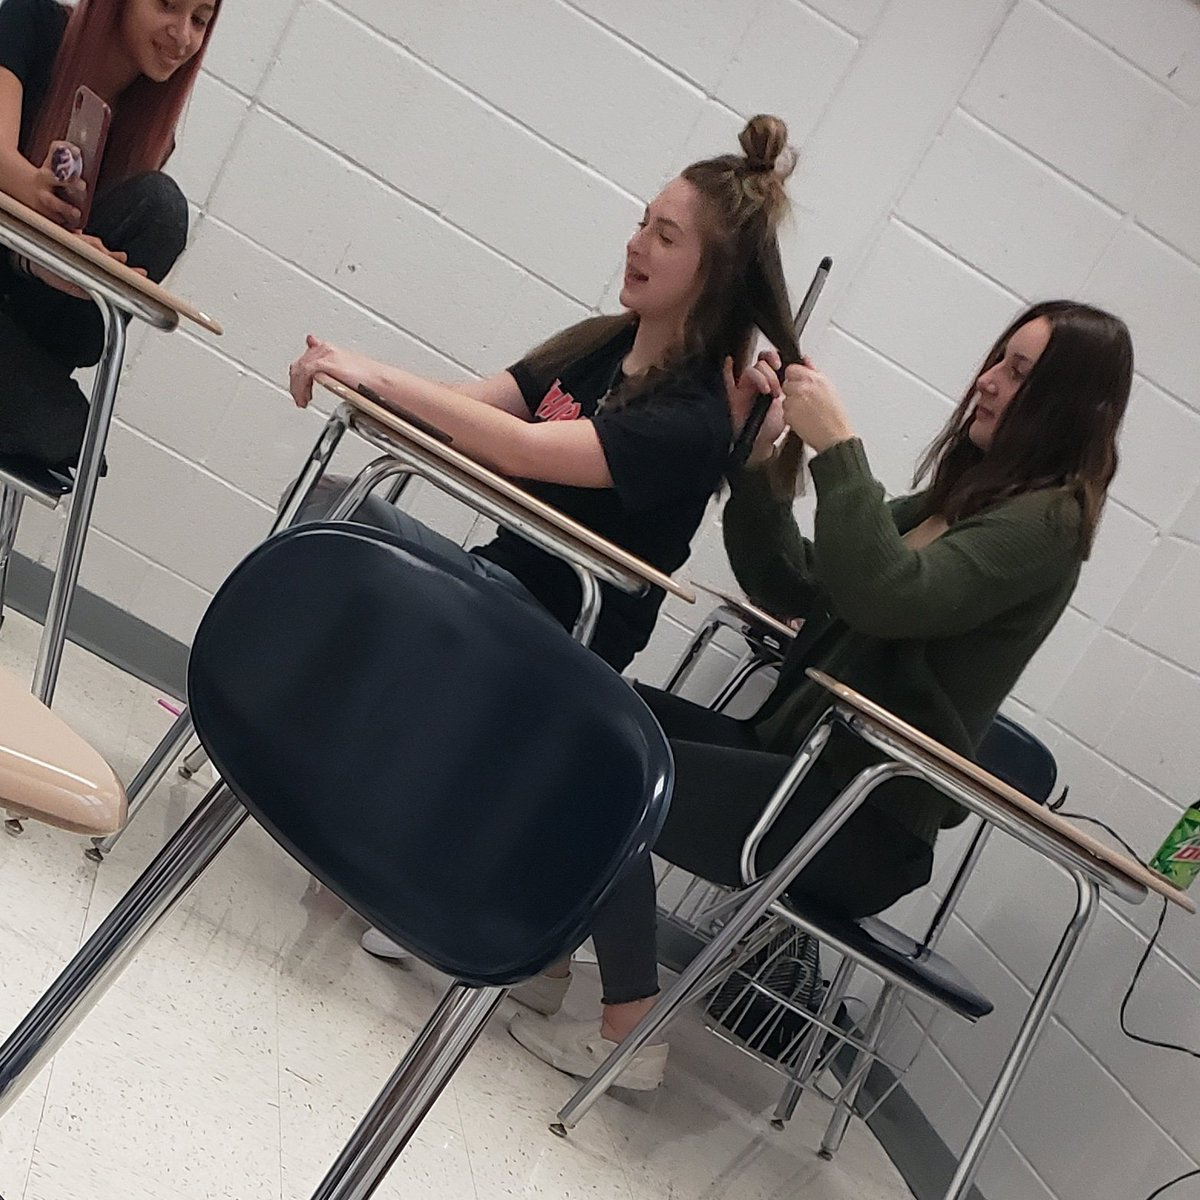 They are curling their hair in class XD #wtf #whytho #classroom #school